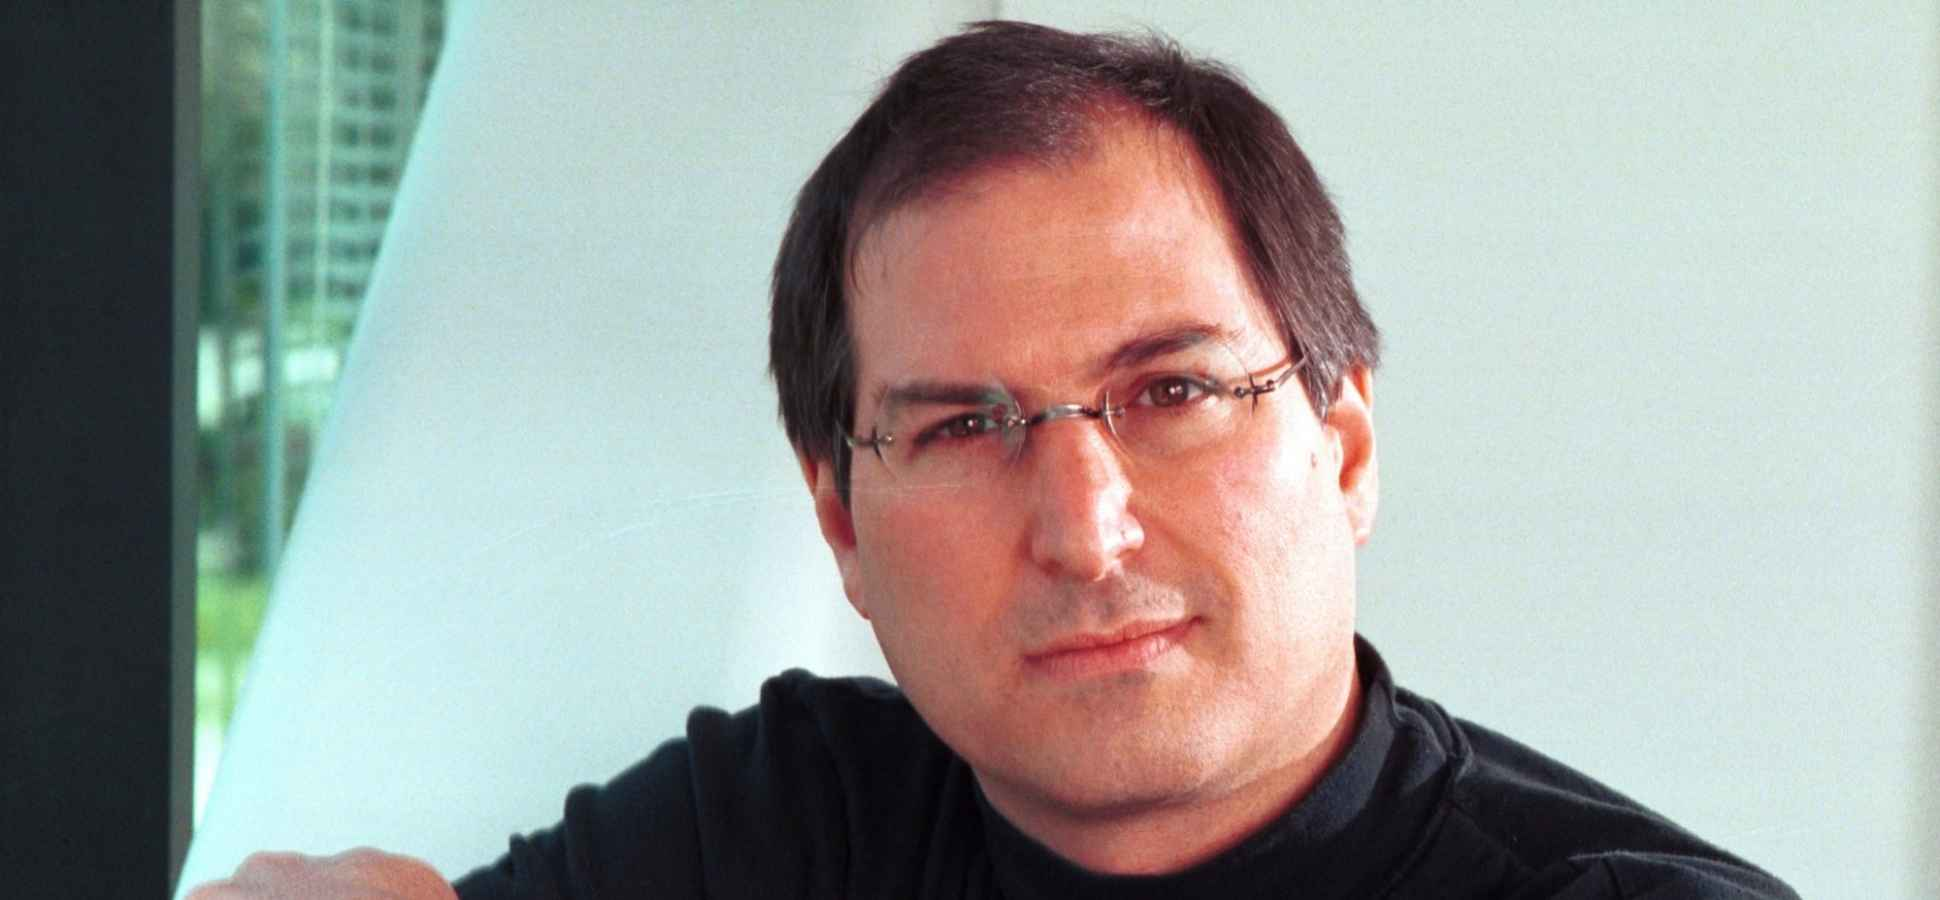 Steve Jobs Used this Insanely Simple Strategy to Get What He Wanted (and You Can Too)